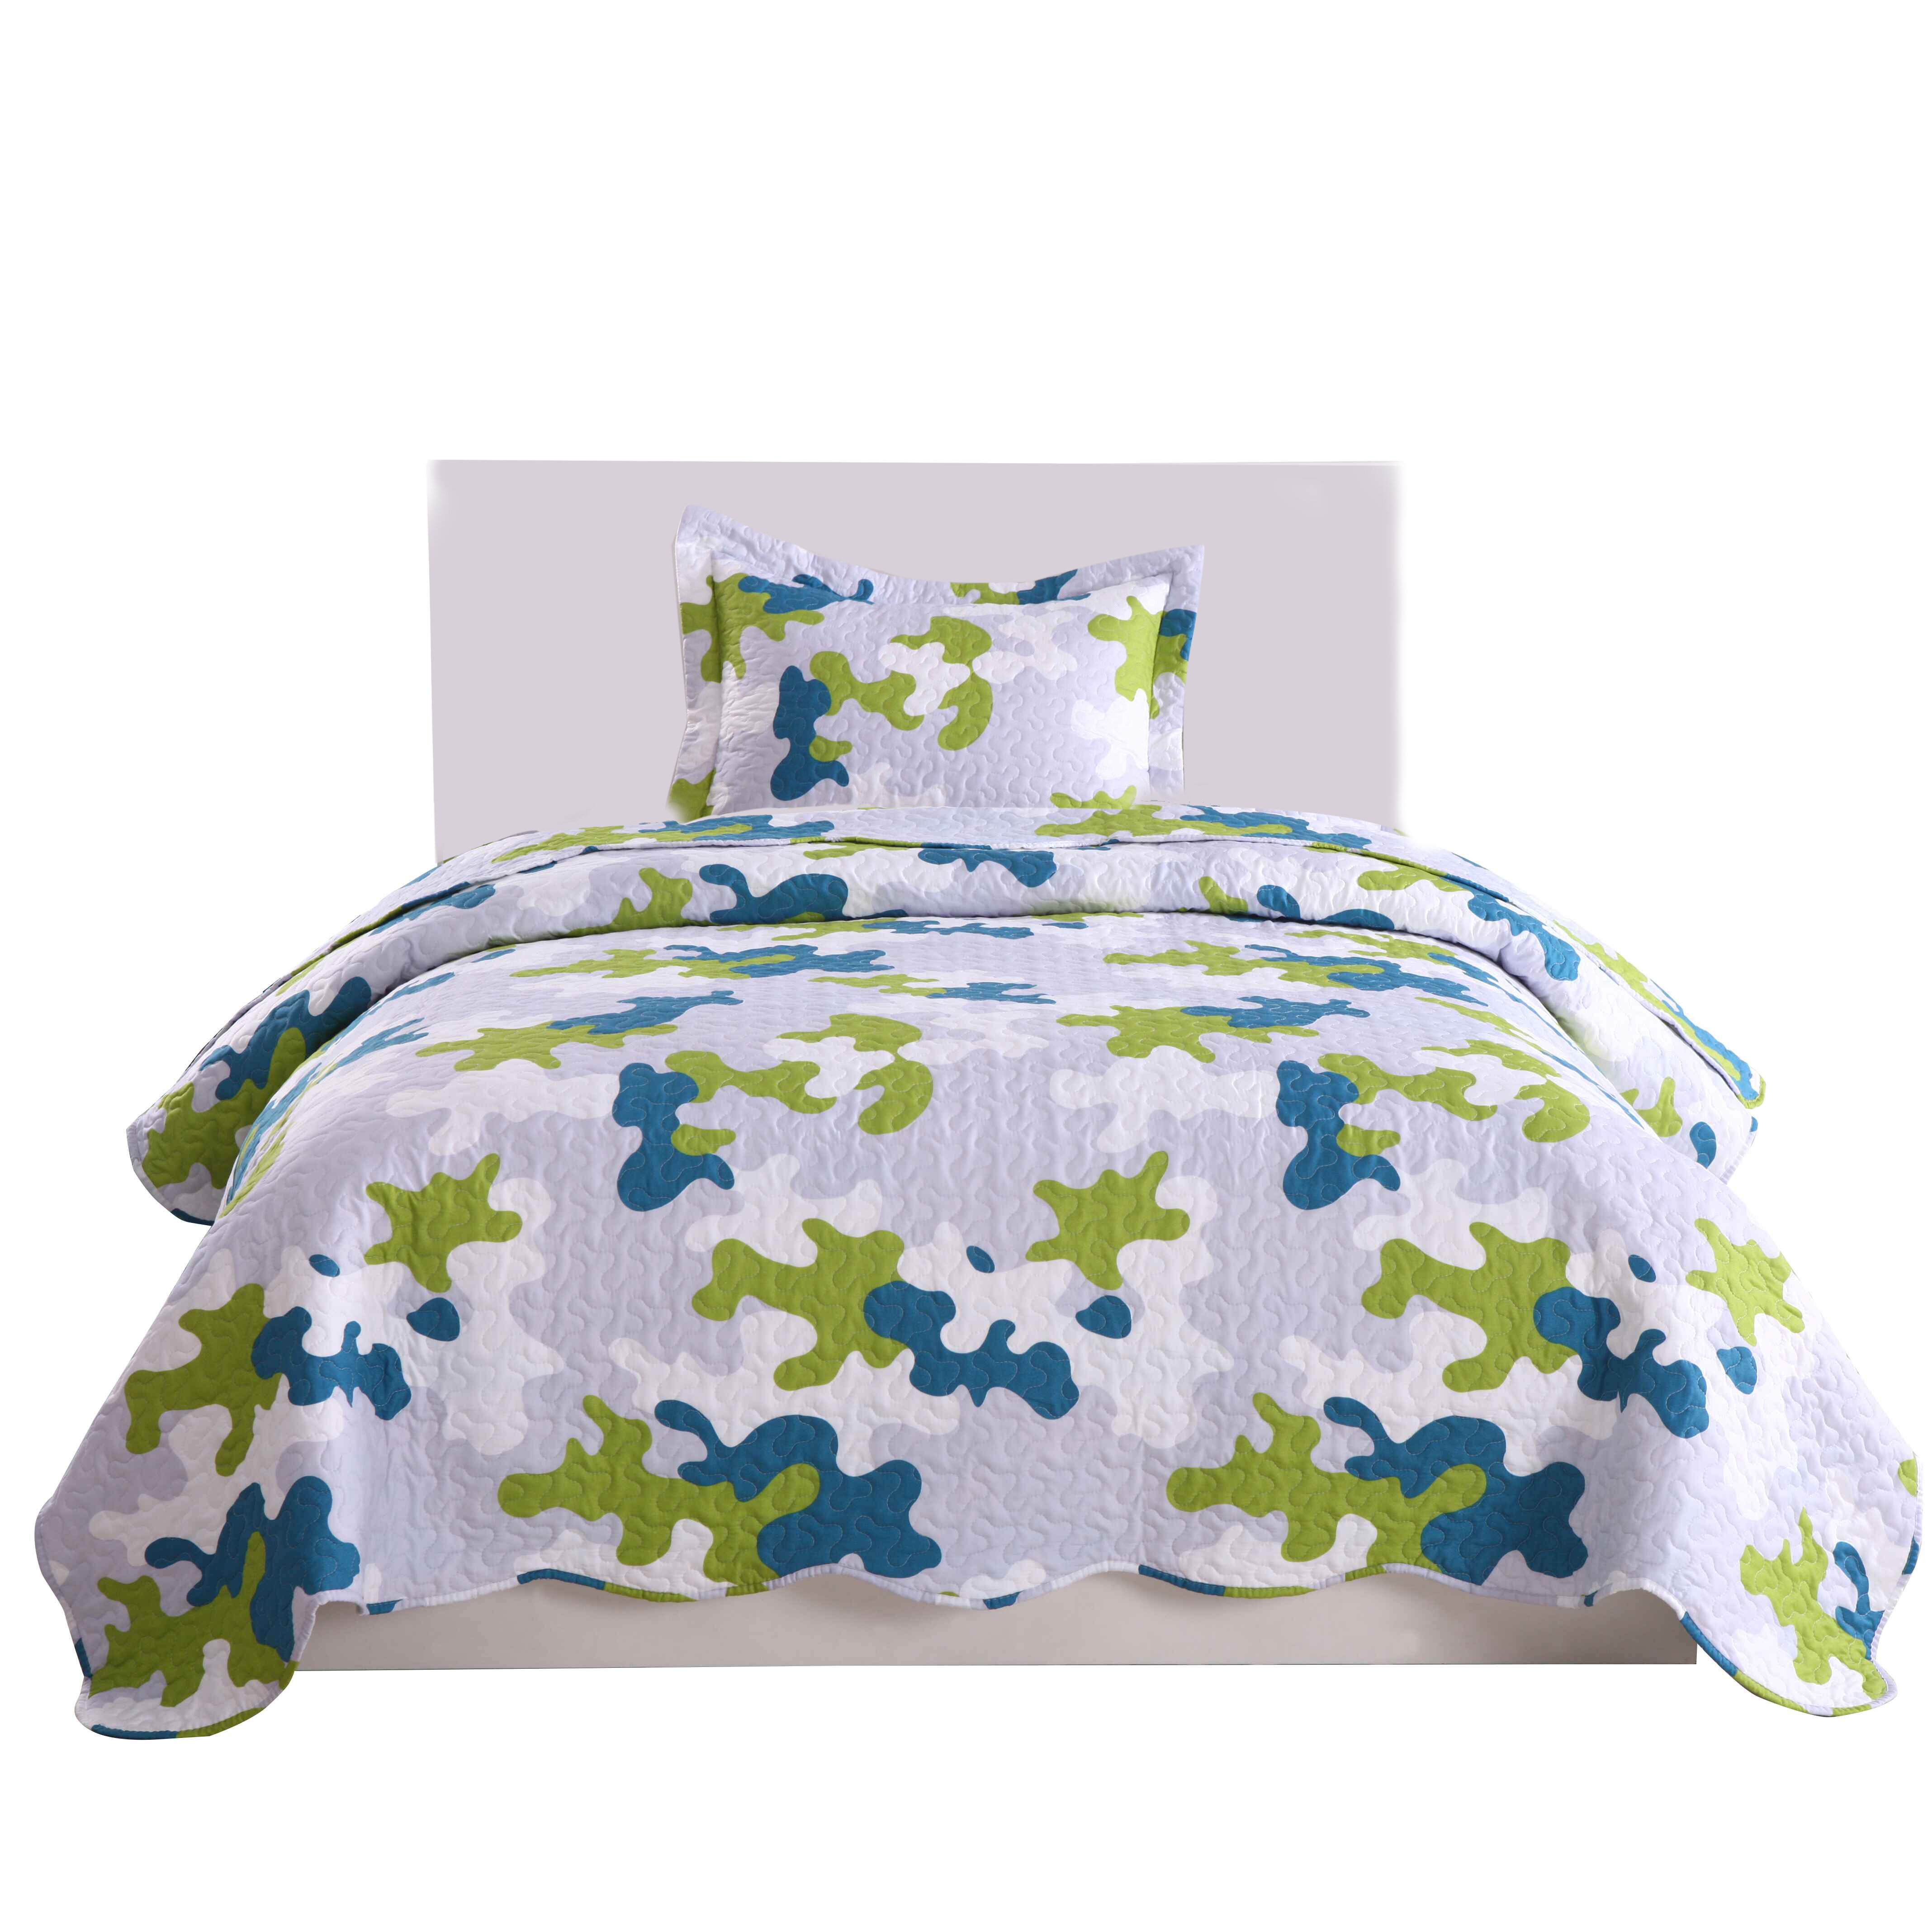 CAMOUFLAGE SLEEP CHILL SNOOZE ARMY PRINT CAMO GREY BLACK BEDDING OR CURTAINS